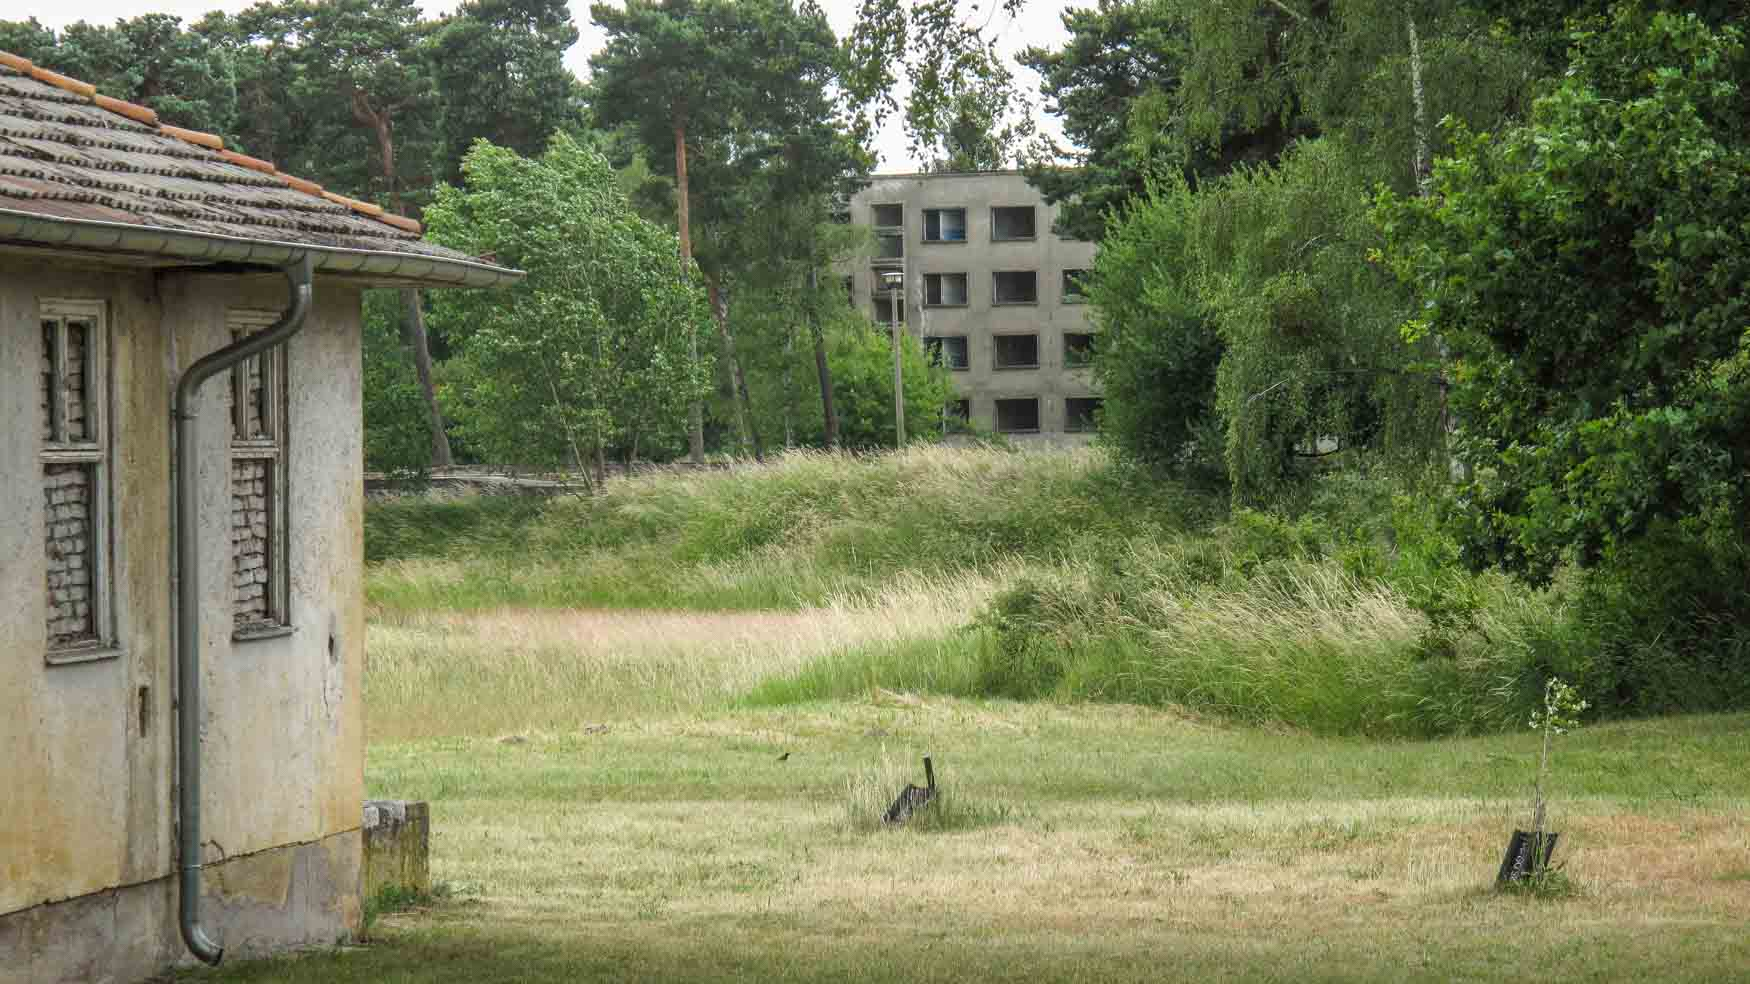 Lost Place Olympisches Dorf Elstal